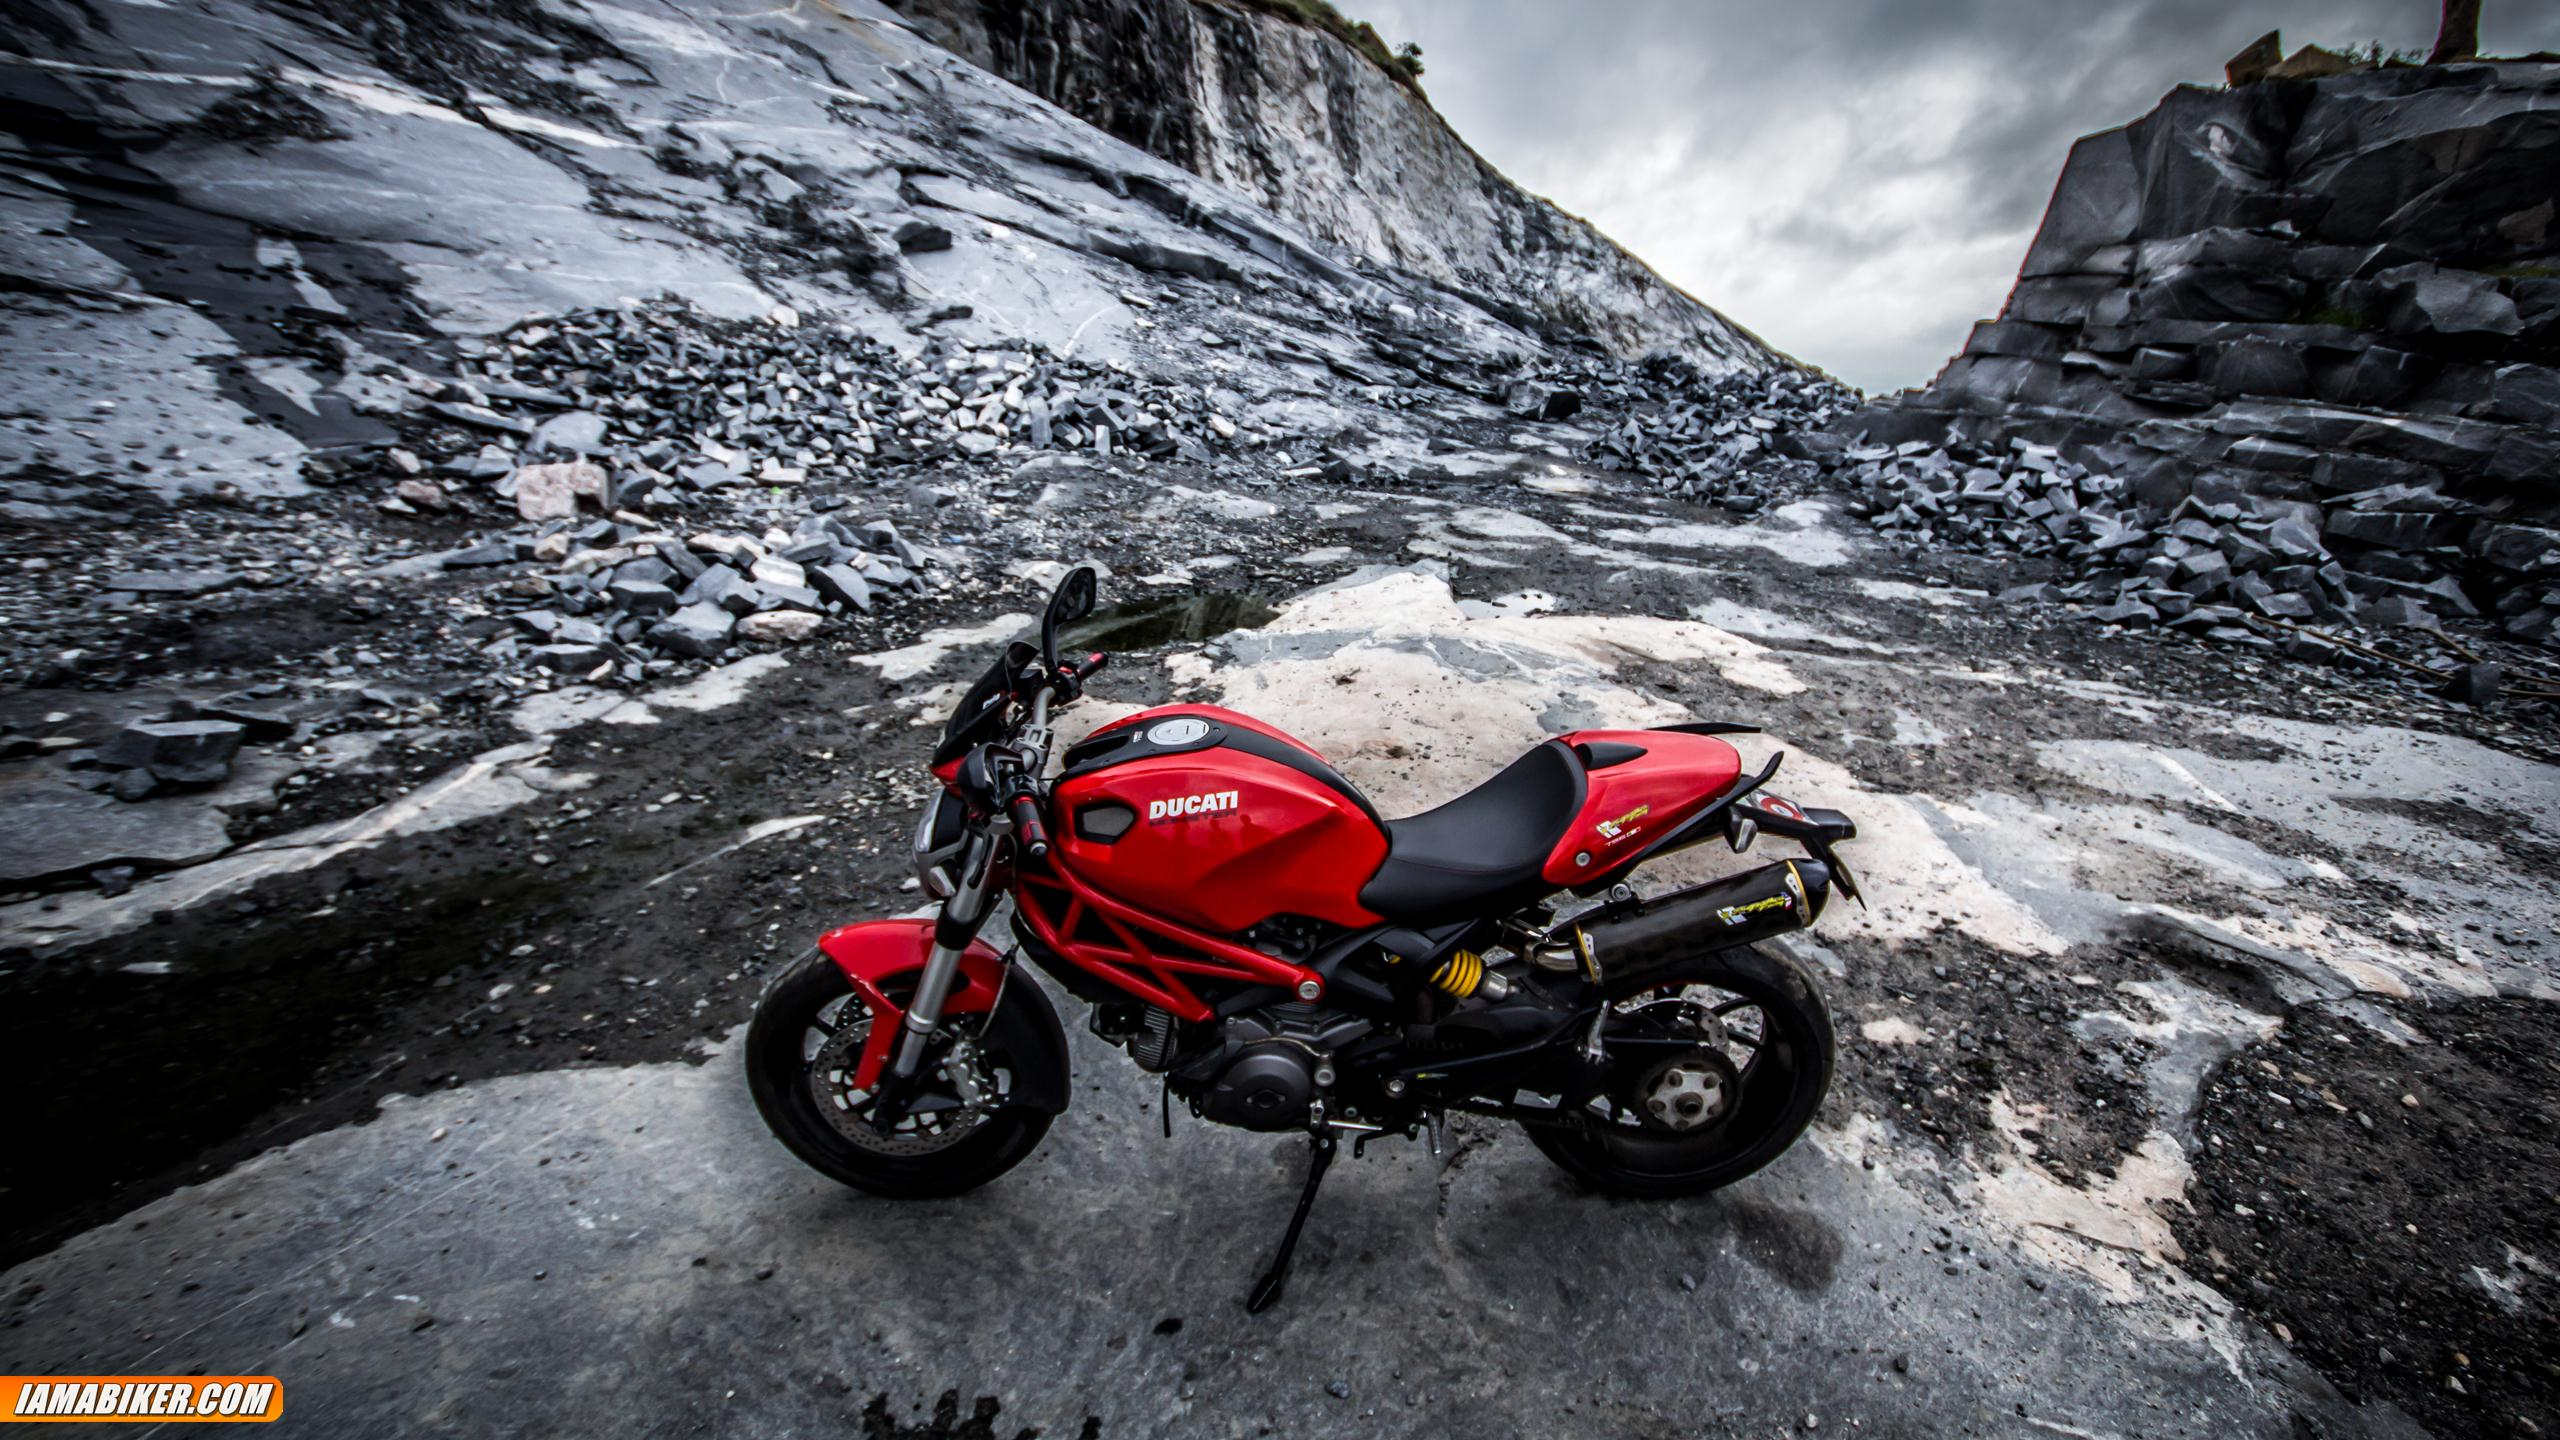 Fantastic Wallpaper Mountain Motorcycle - Ducati-Monster-796-wallpapers-06  Perfect Image Reference_95238.jpg